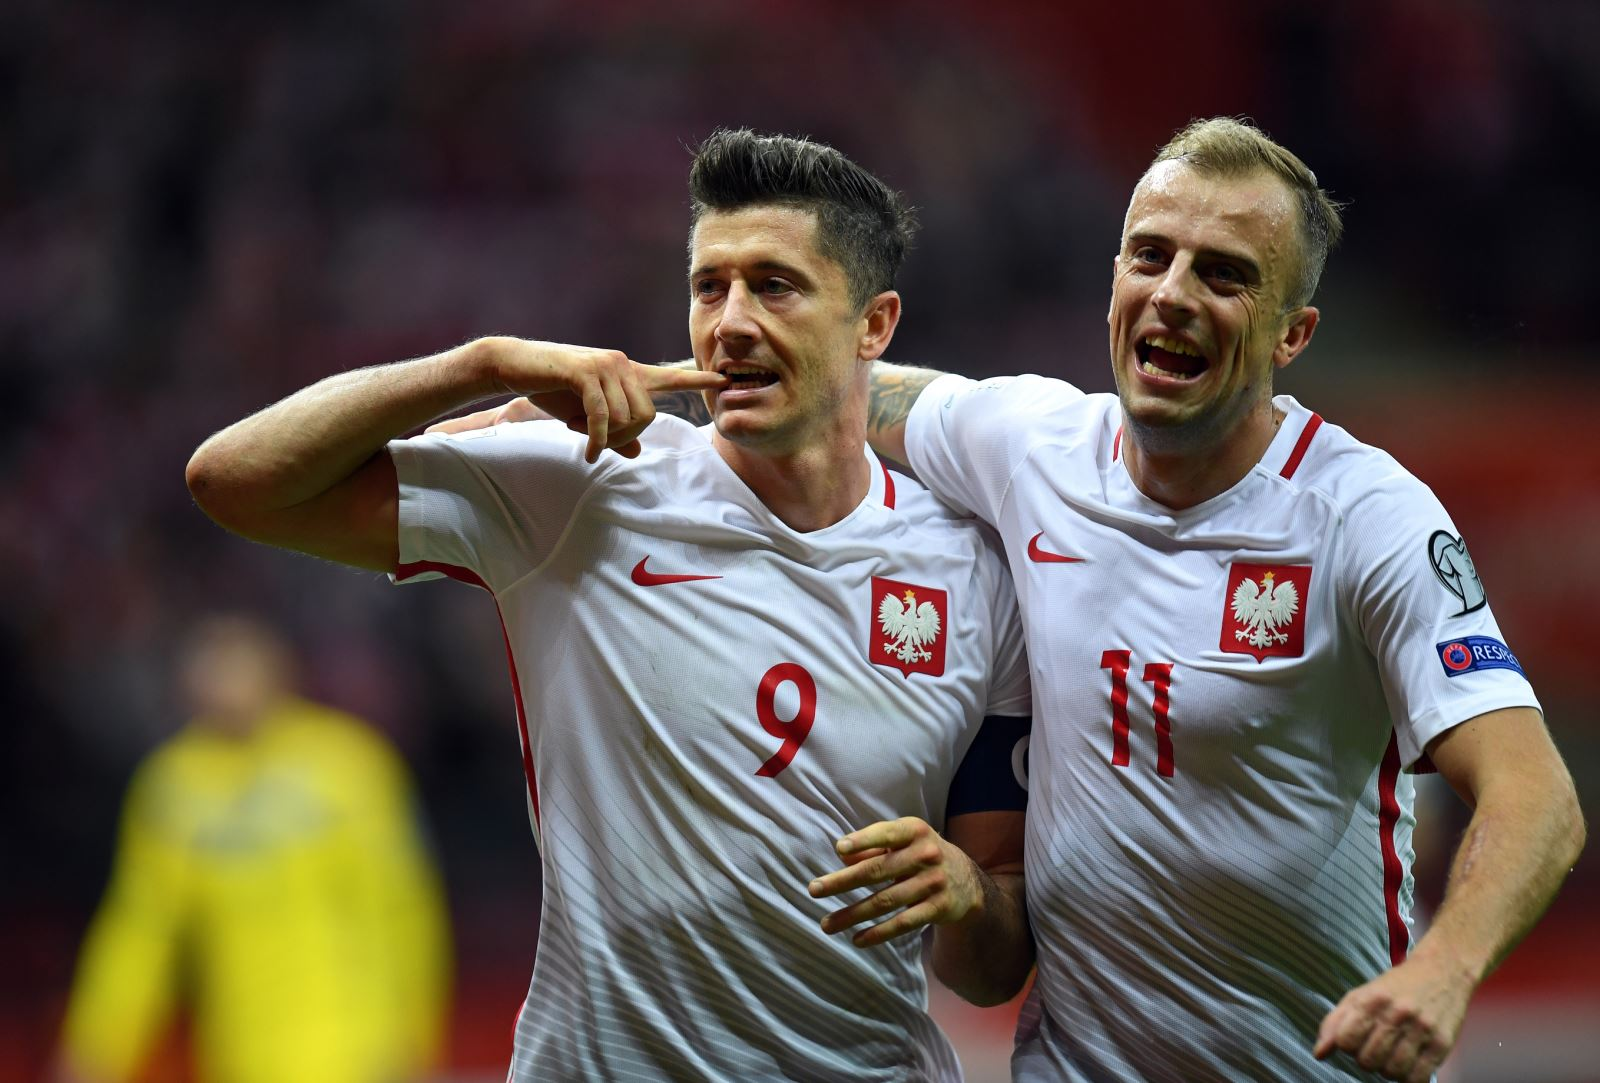 Poland are among the teams who have qualified for this year's World Cup